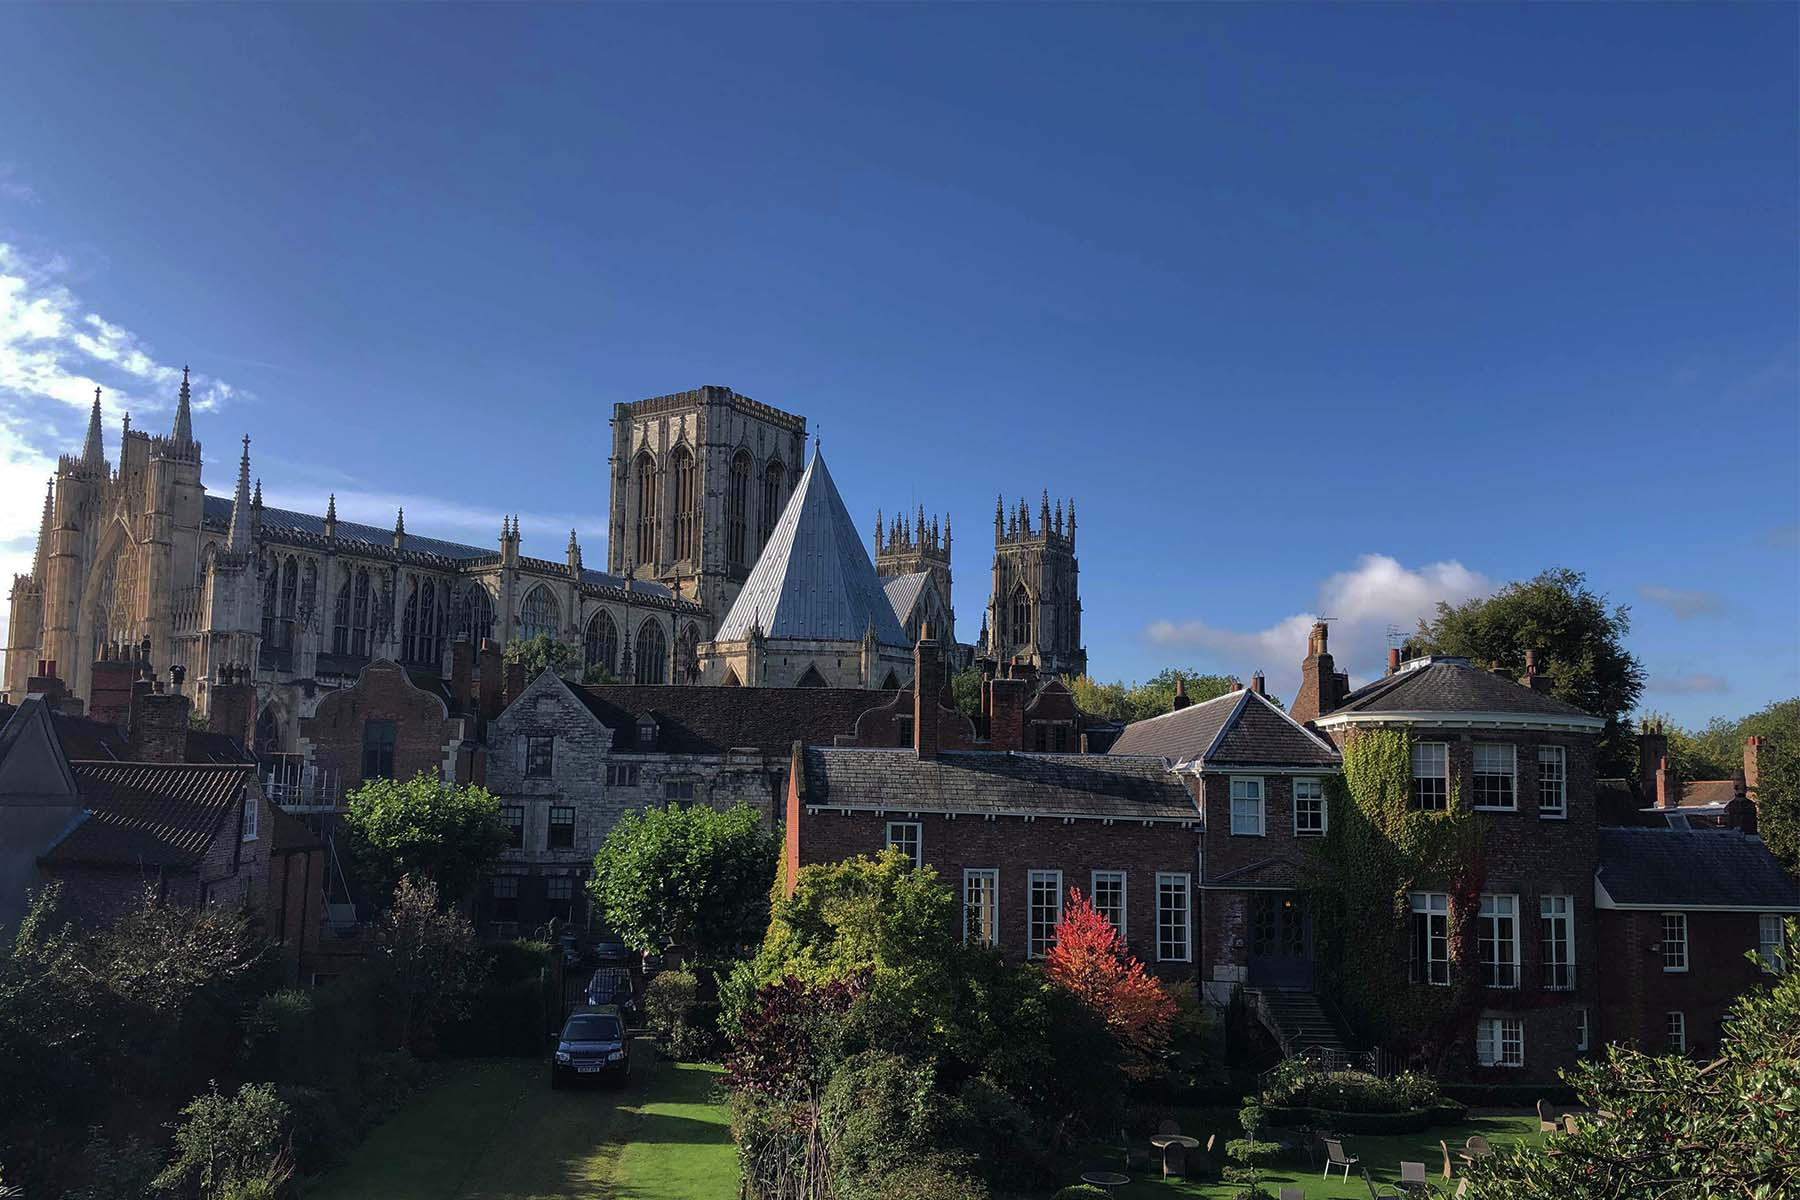 Views of York Minster